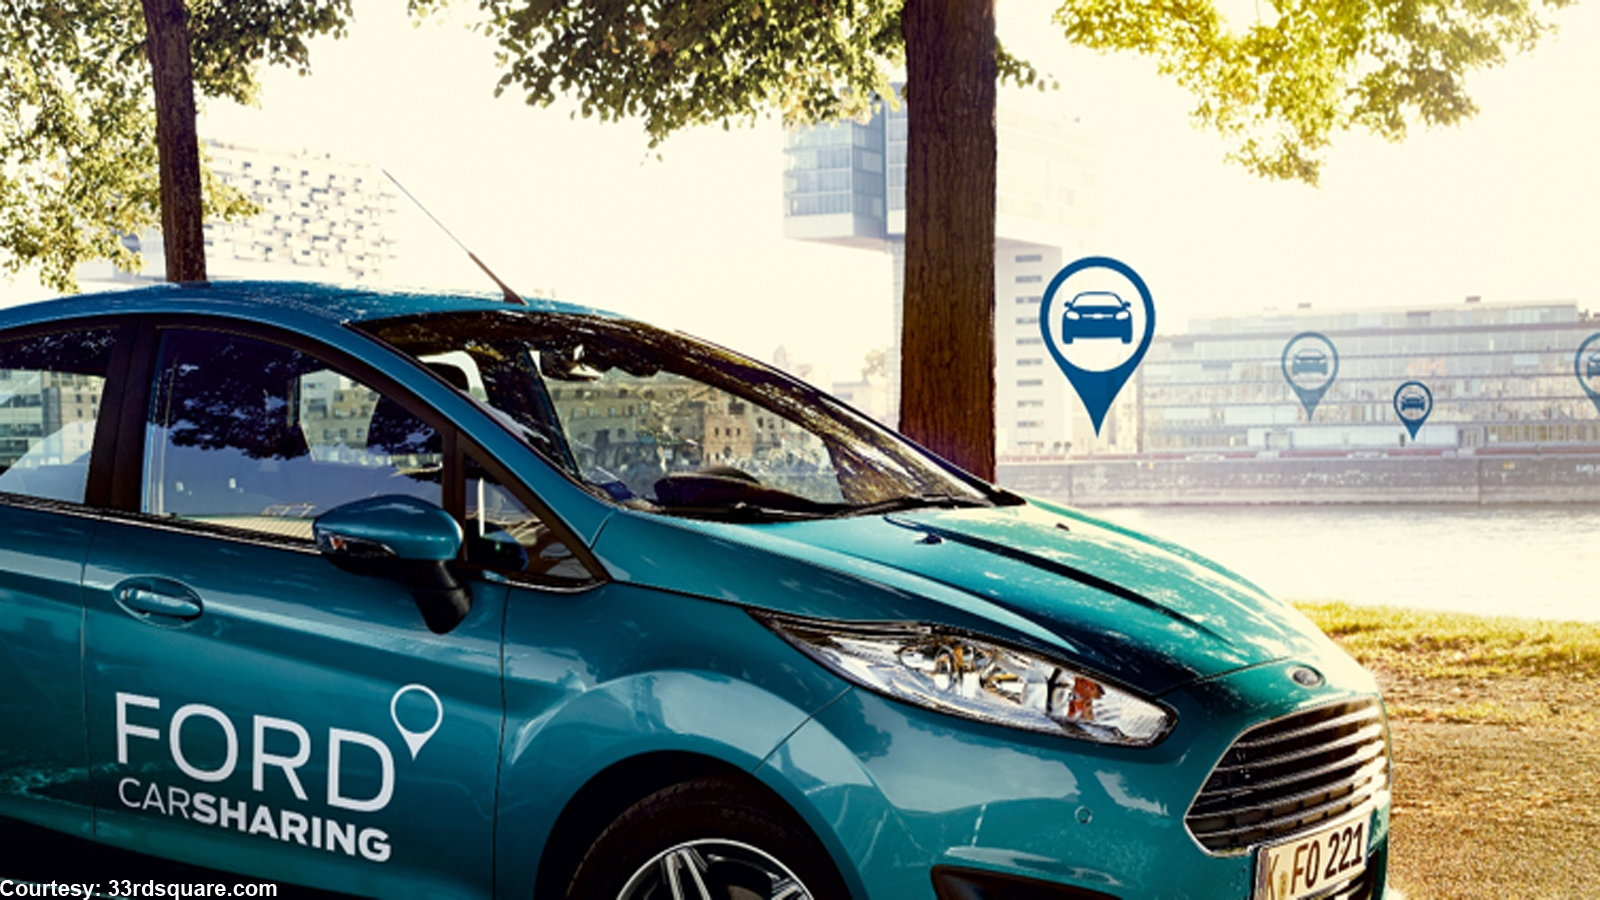 Ford Smart Mobility to Be Introduced in 2021